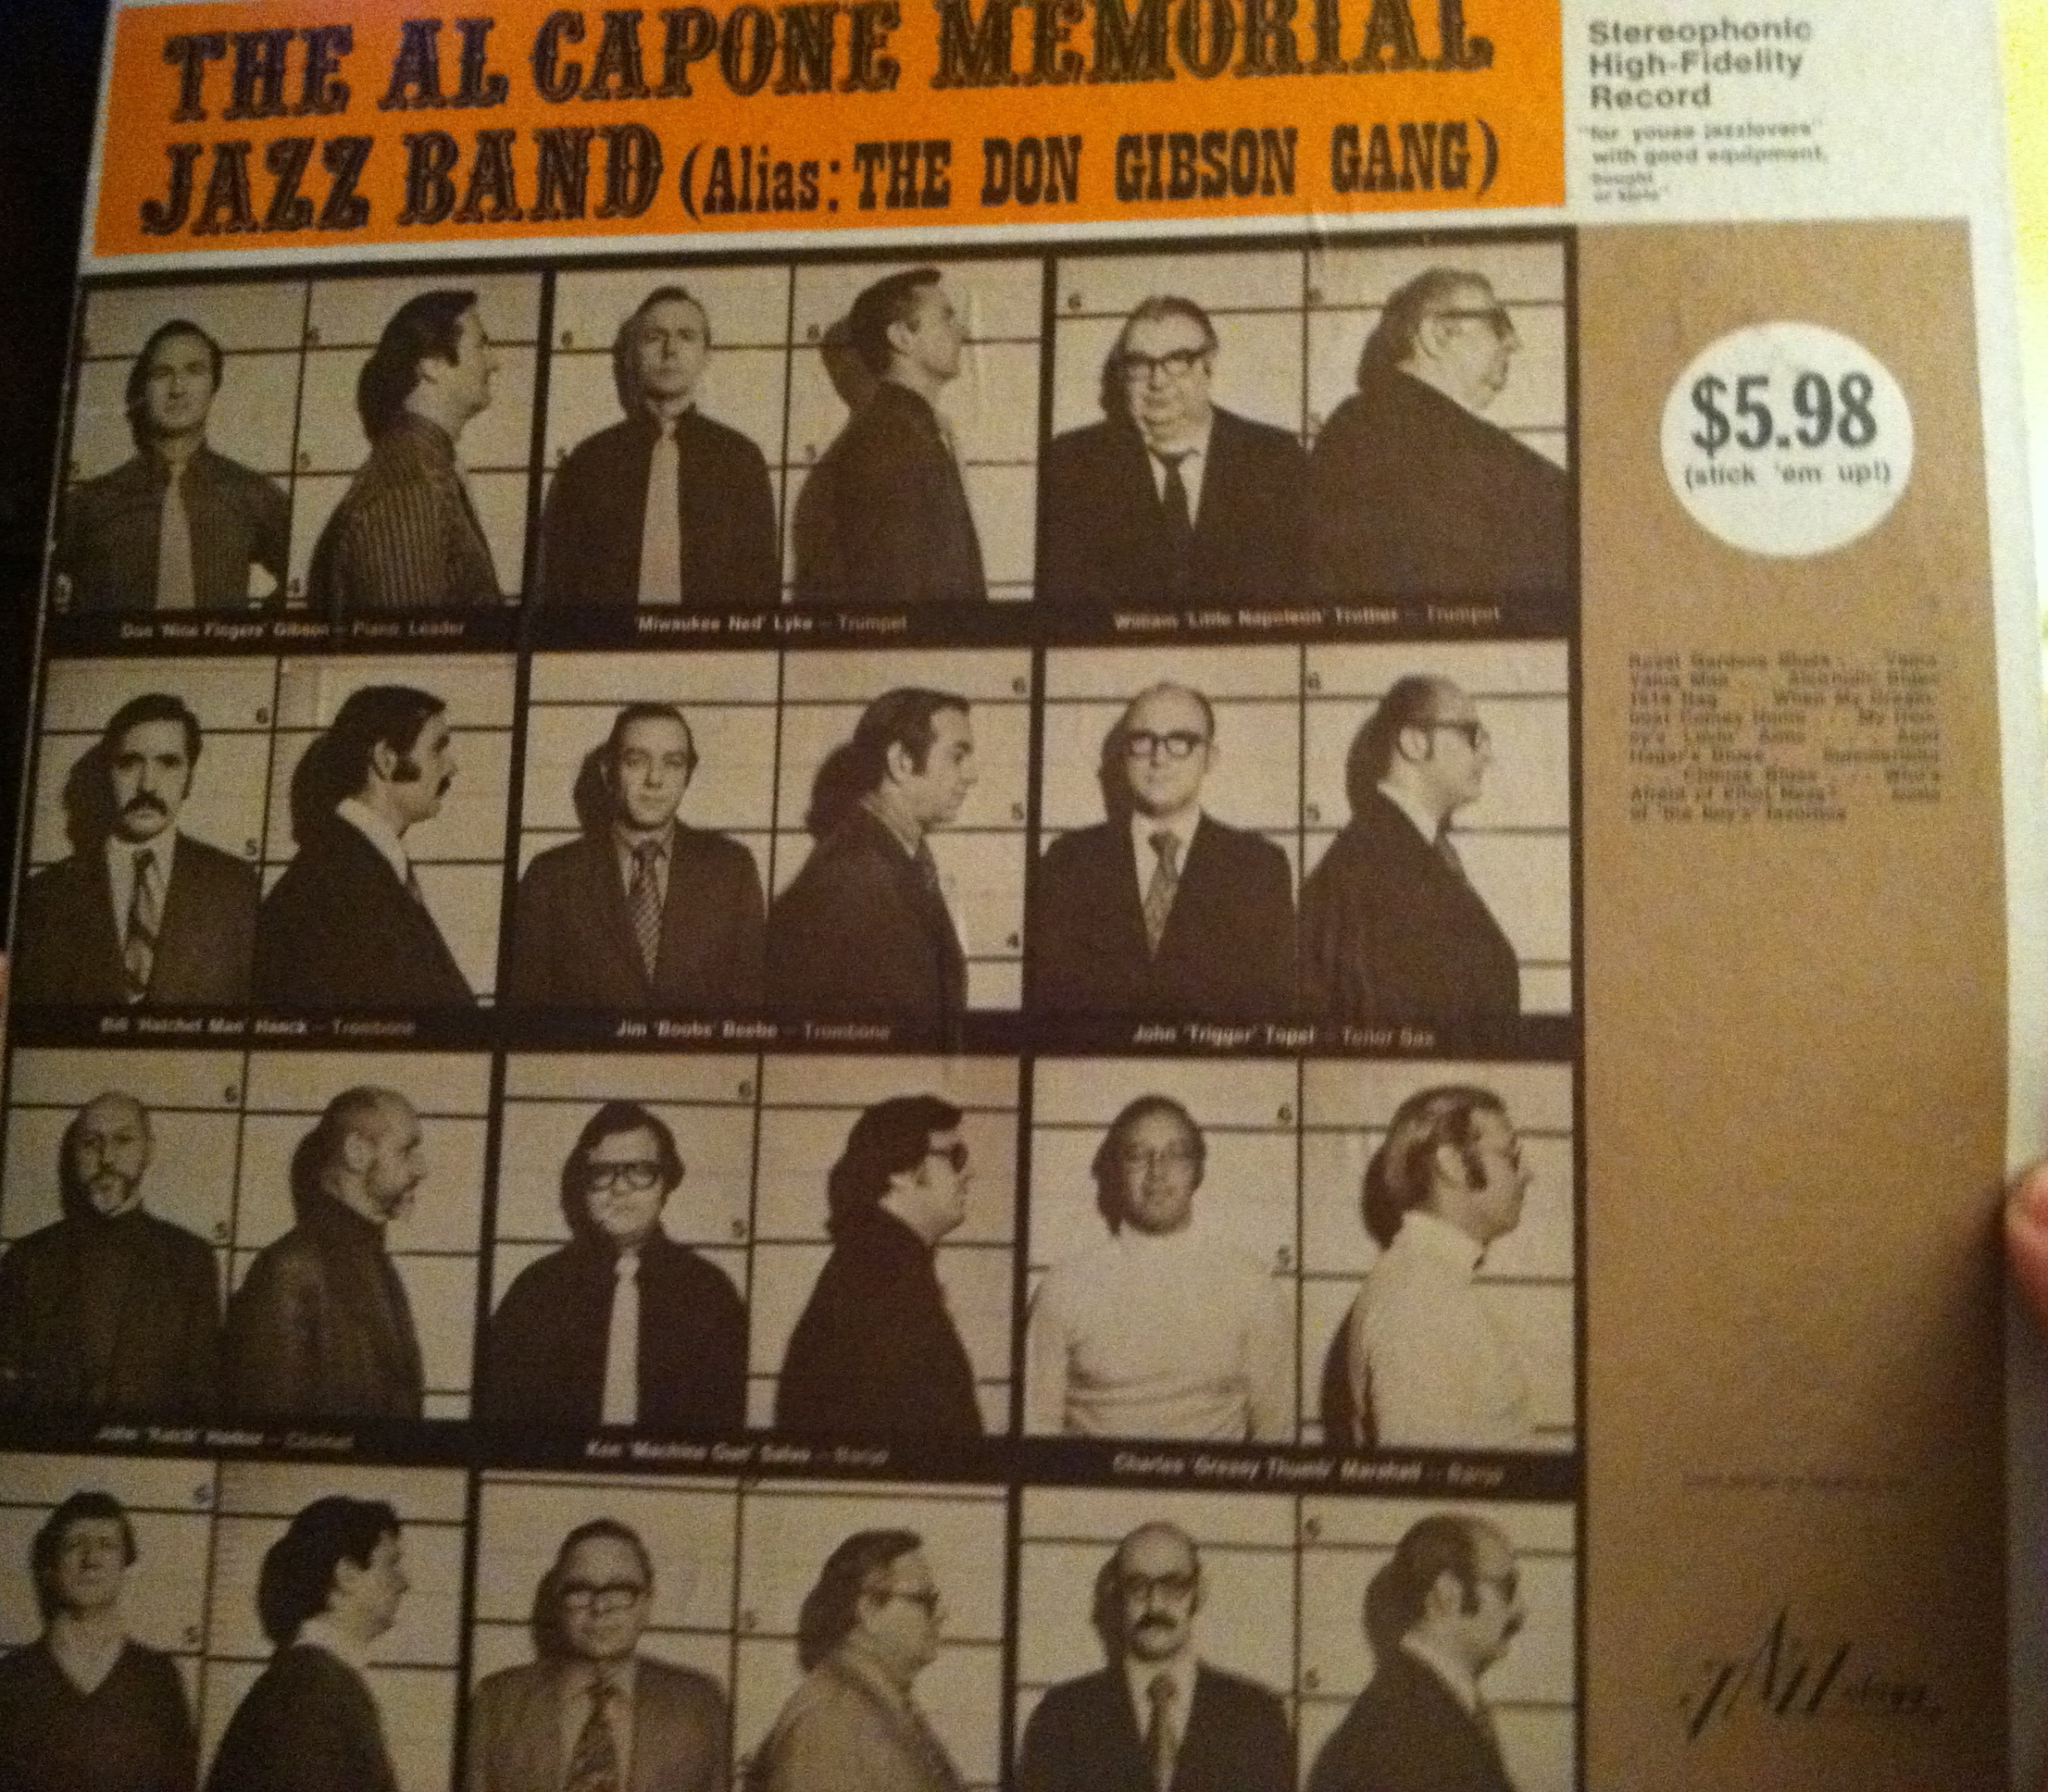 The Al Capone Memorial Jazz Band (Alias: The Don Gibson Gang)